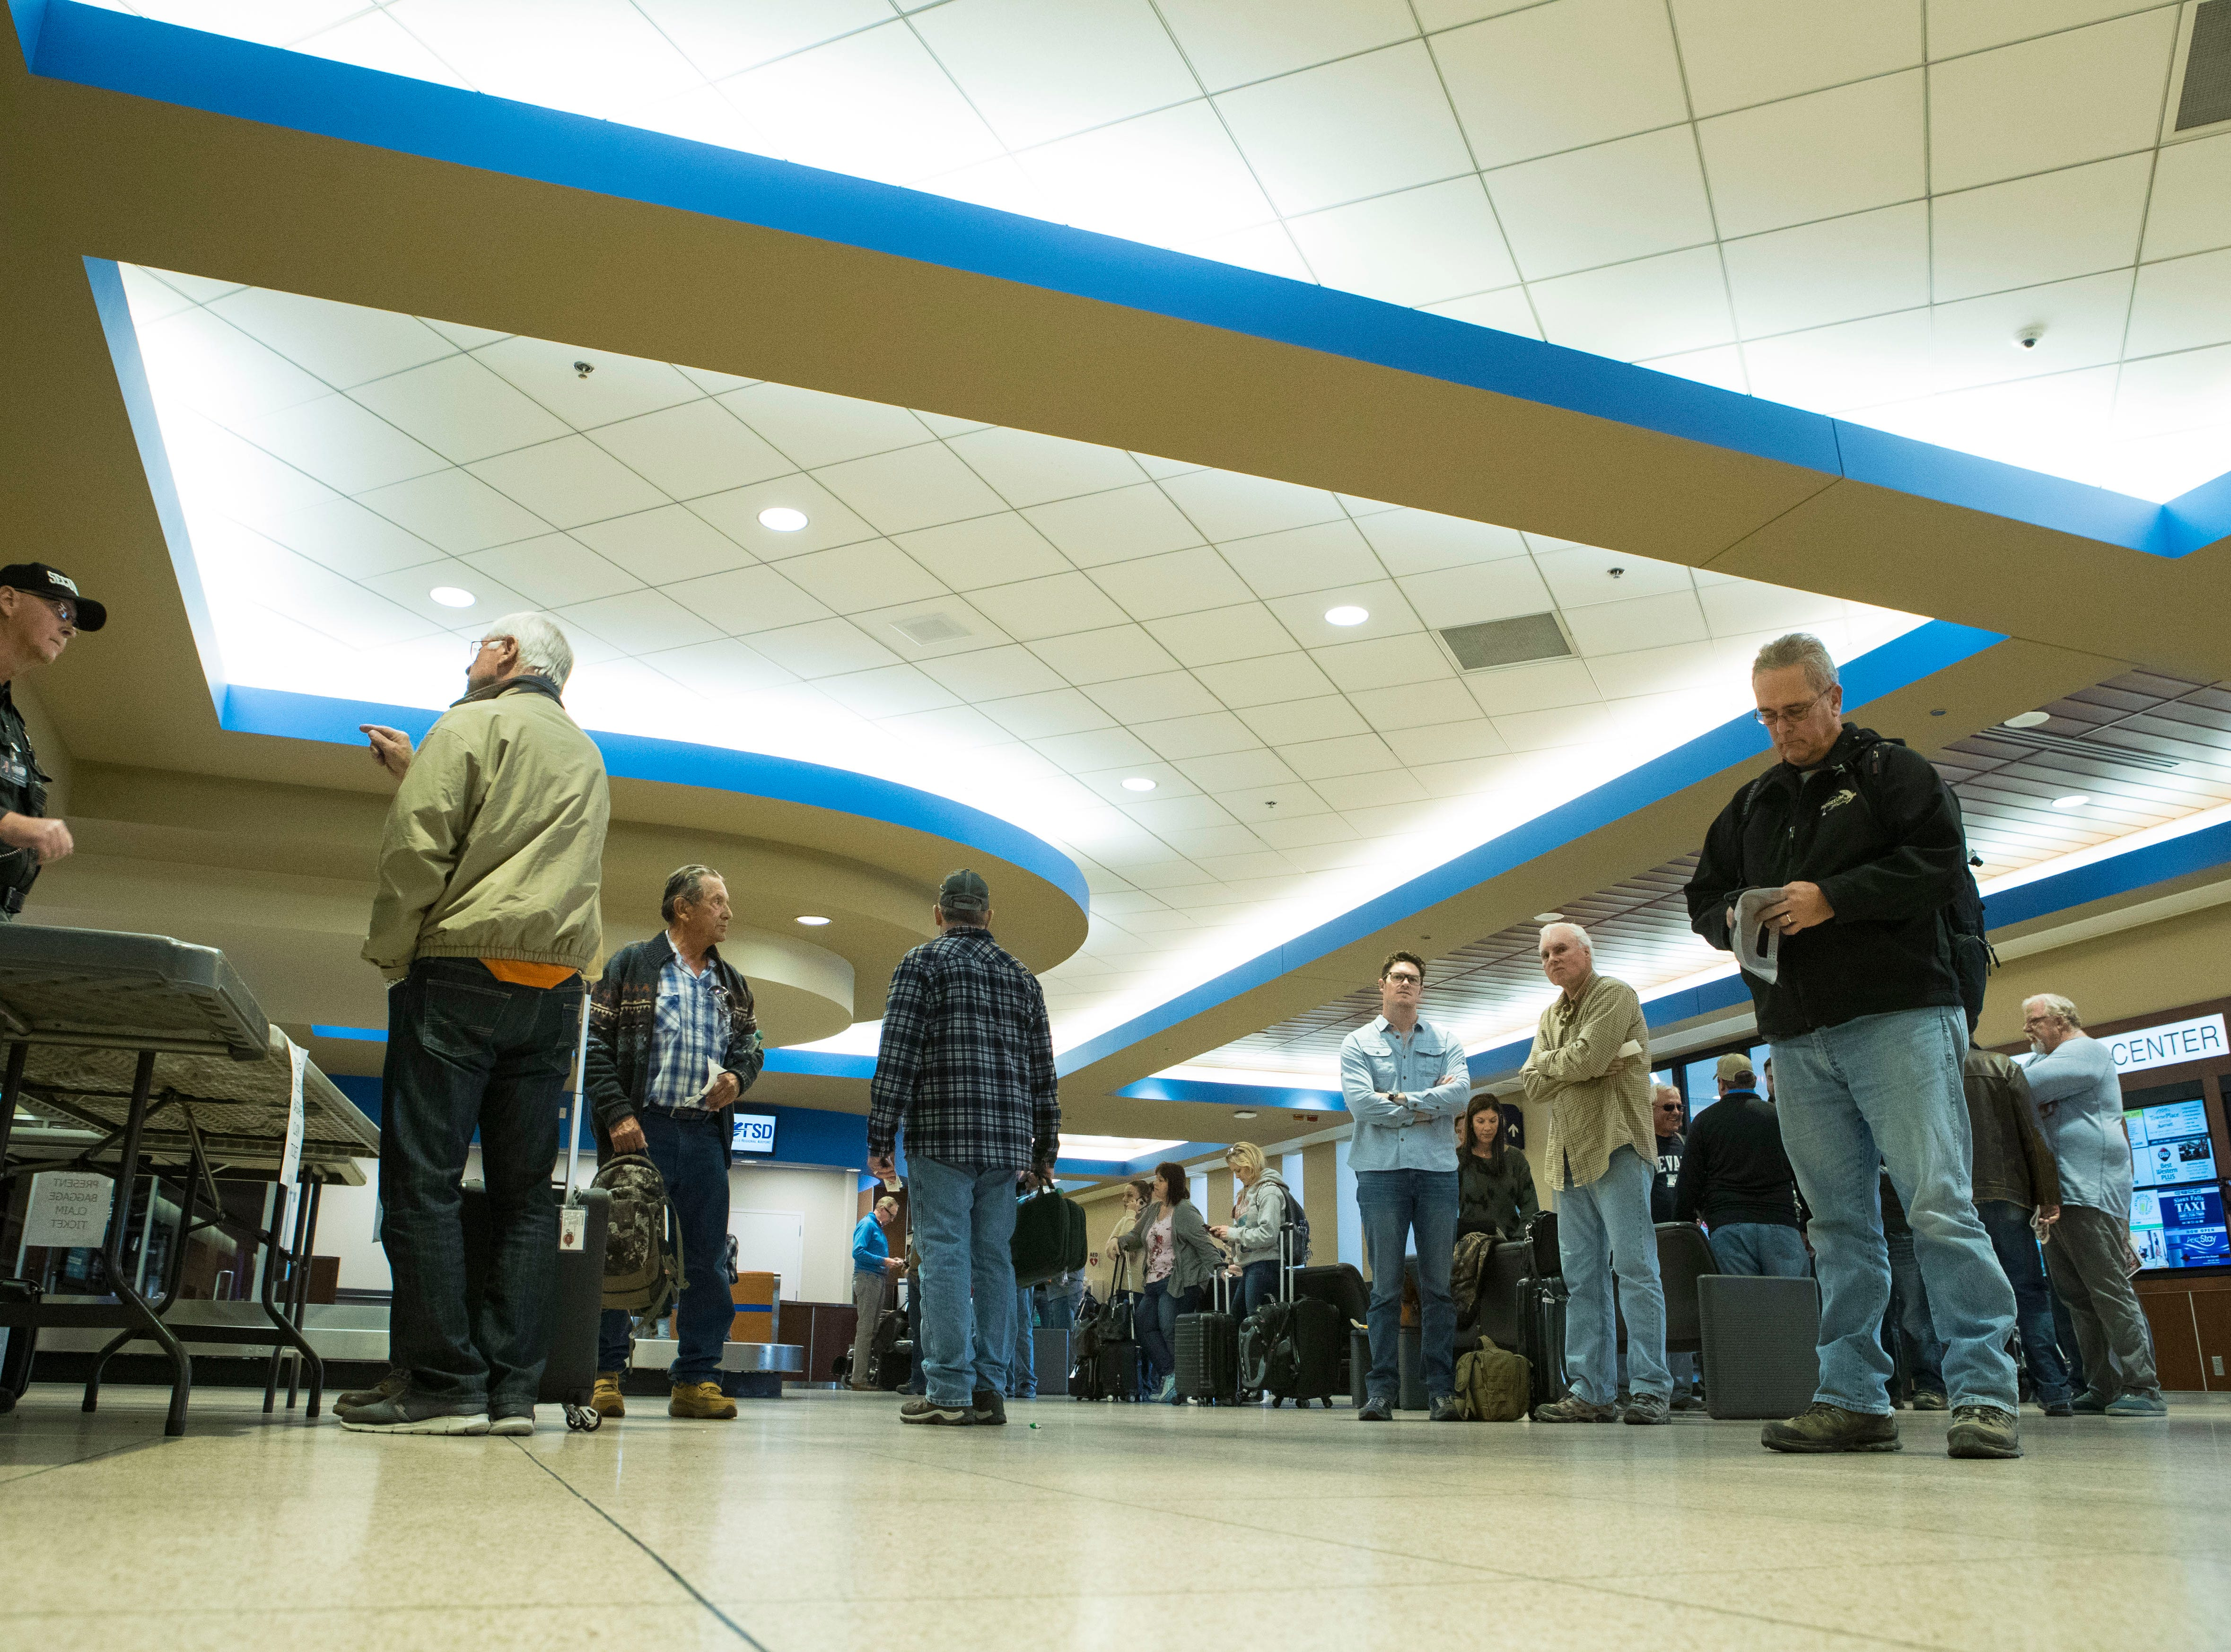 Pheasant hunters wait for their luggage at Sioux Falls Regional Airport Friday, Oct. 19, 2018.